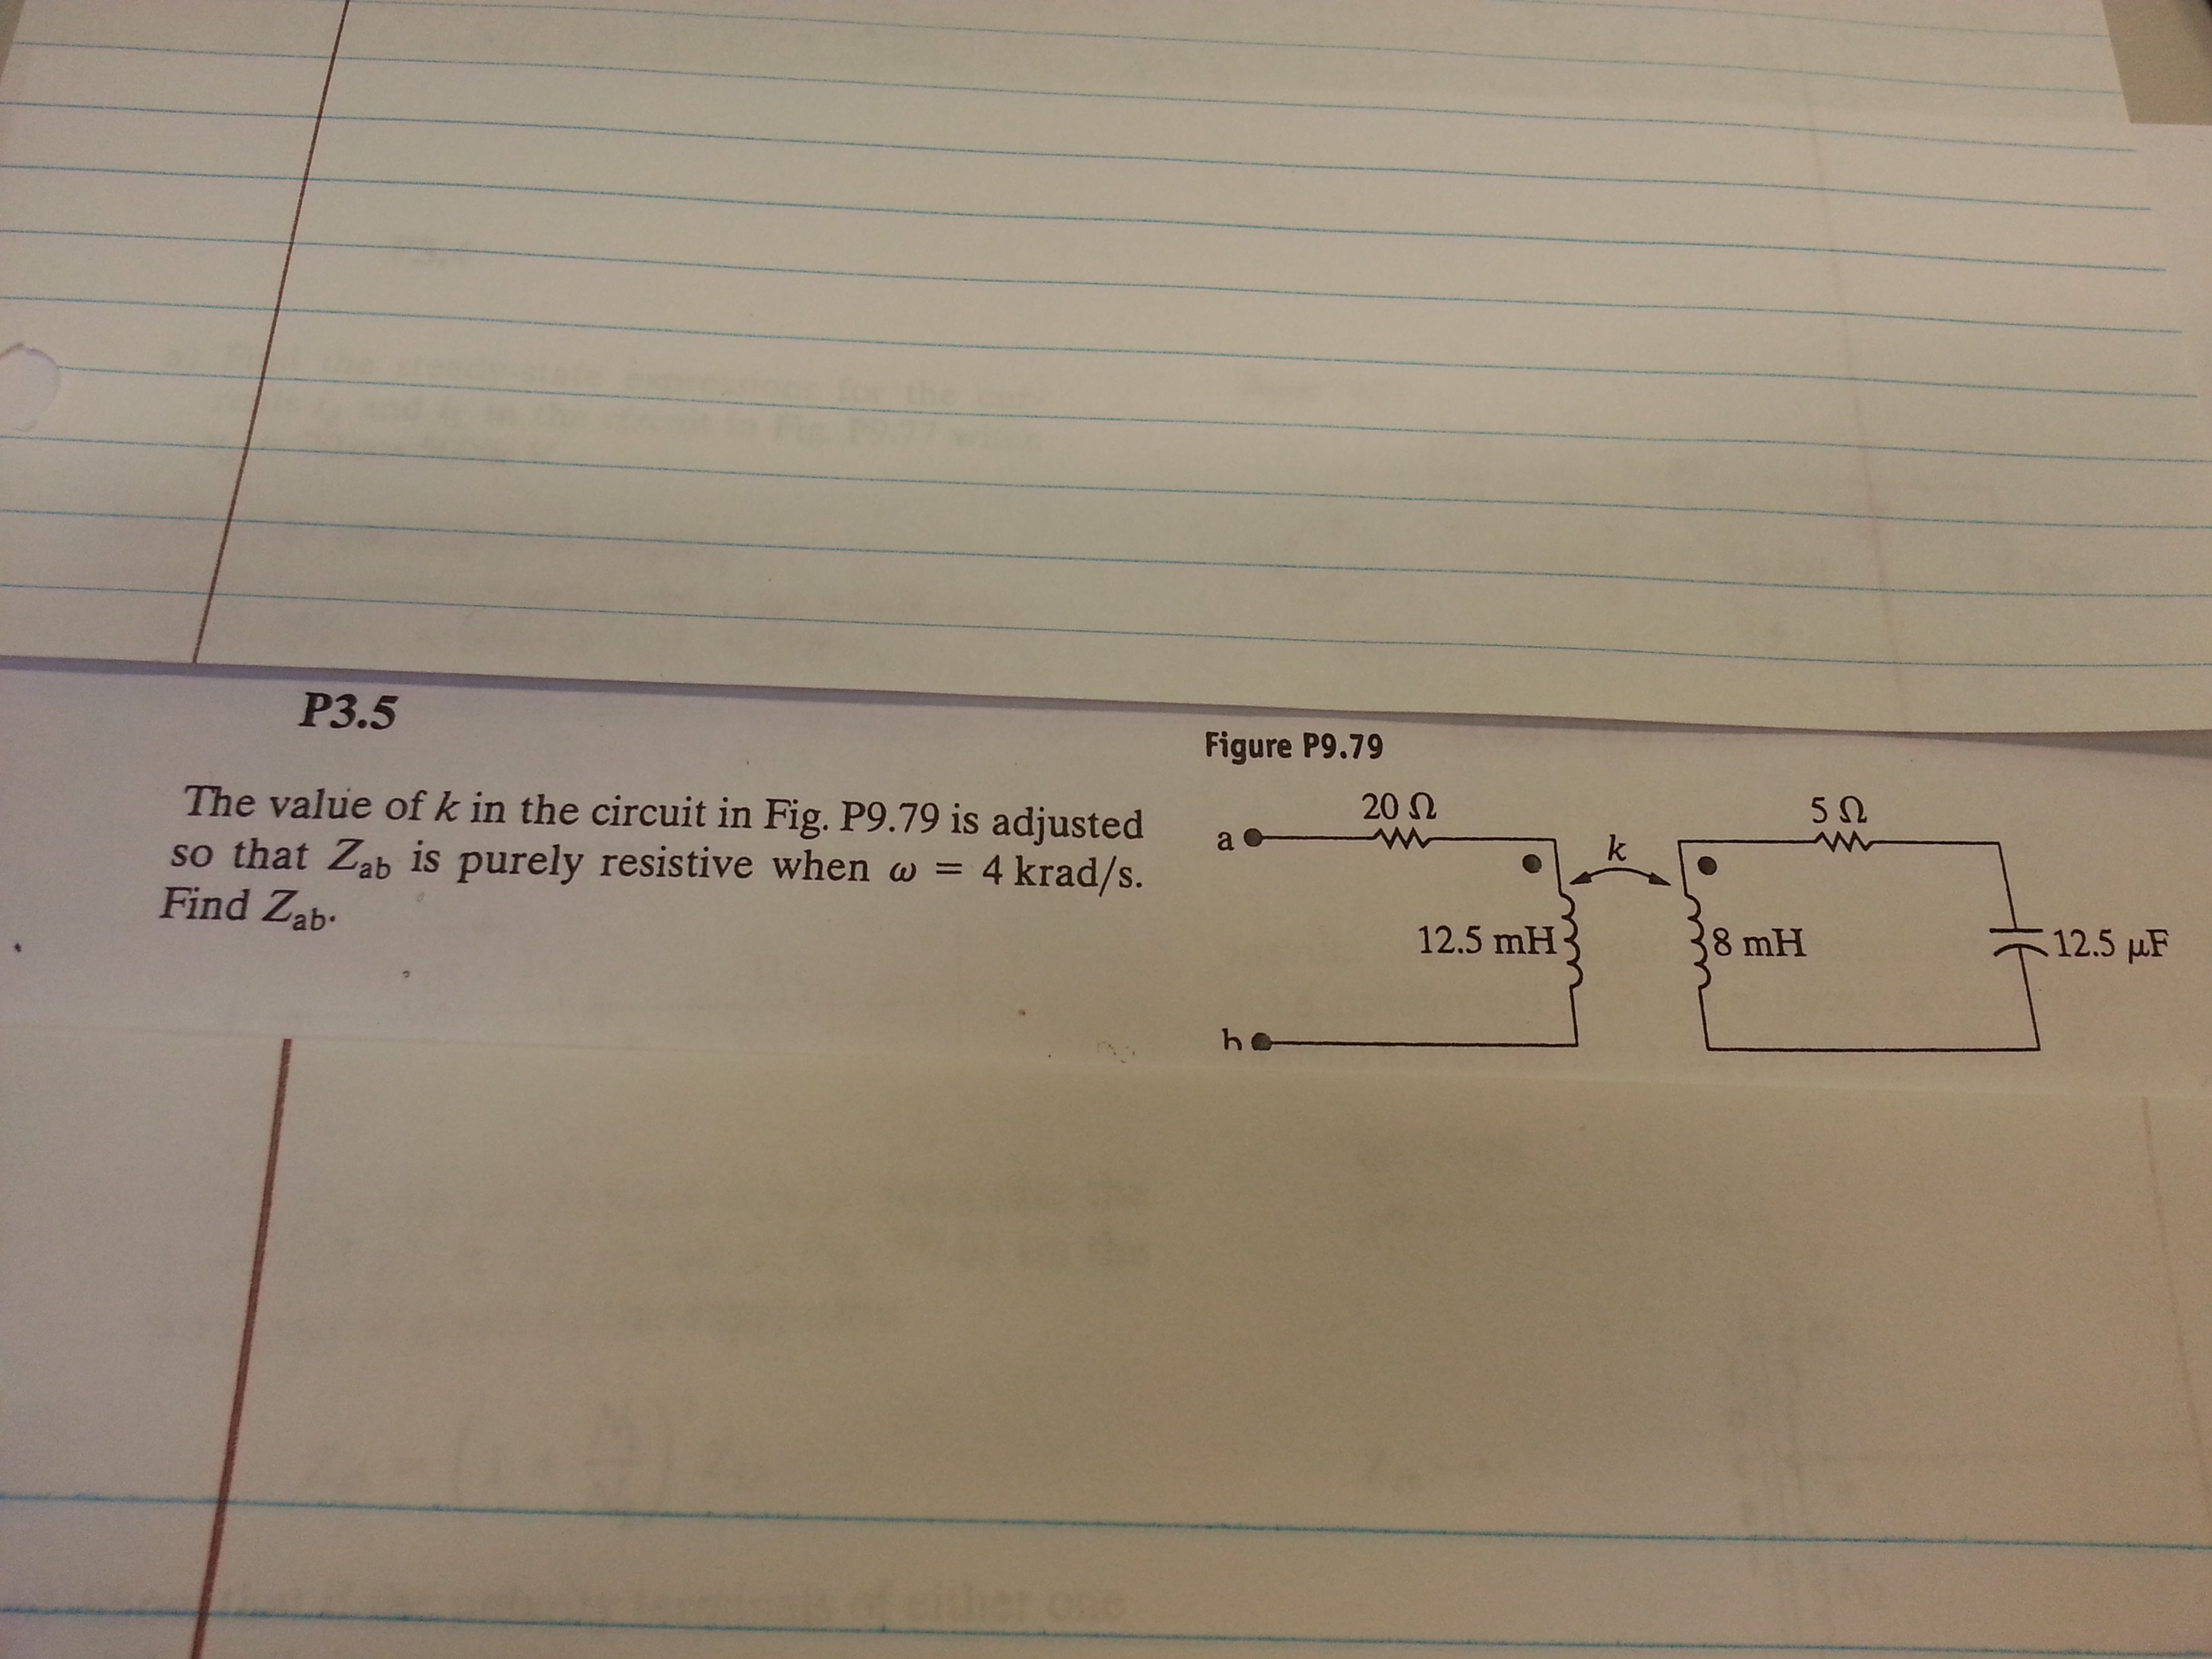 The value of k in the circuit in Fig. P9.79 is adj